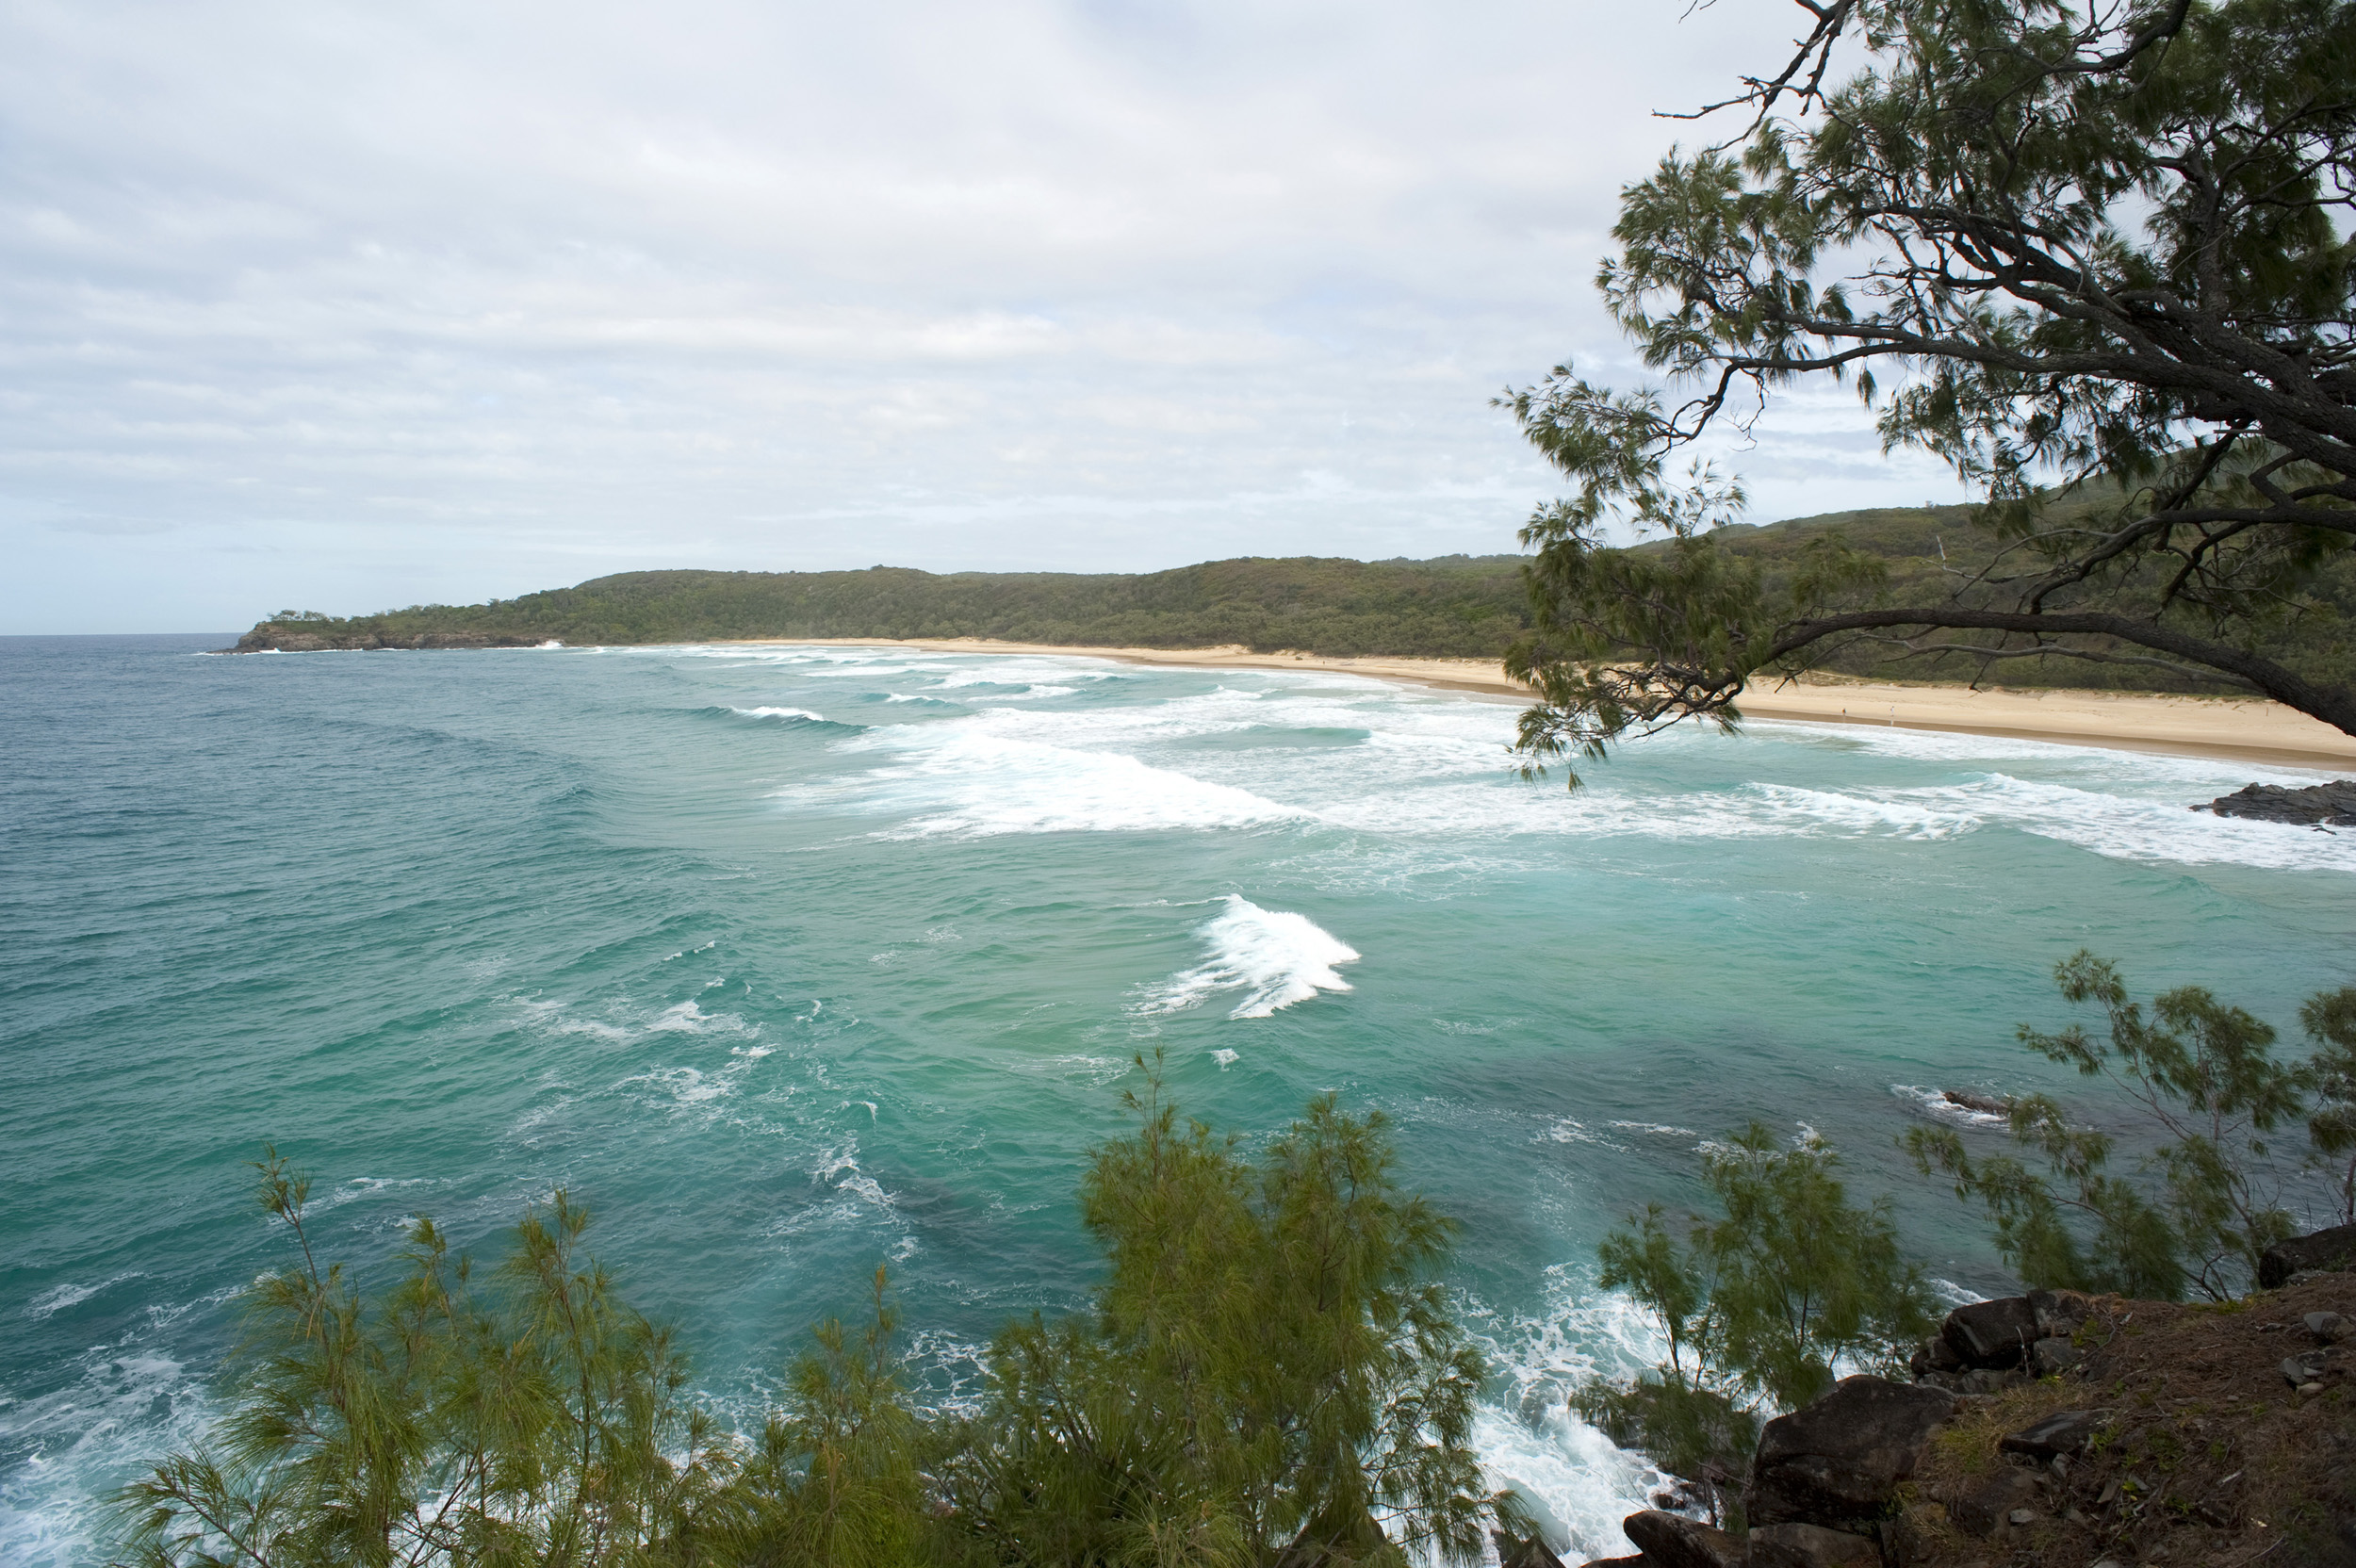 View past foliage of the sandy golden beach at Alexandria Bay, Noosa in Queensland, Australia